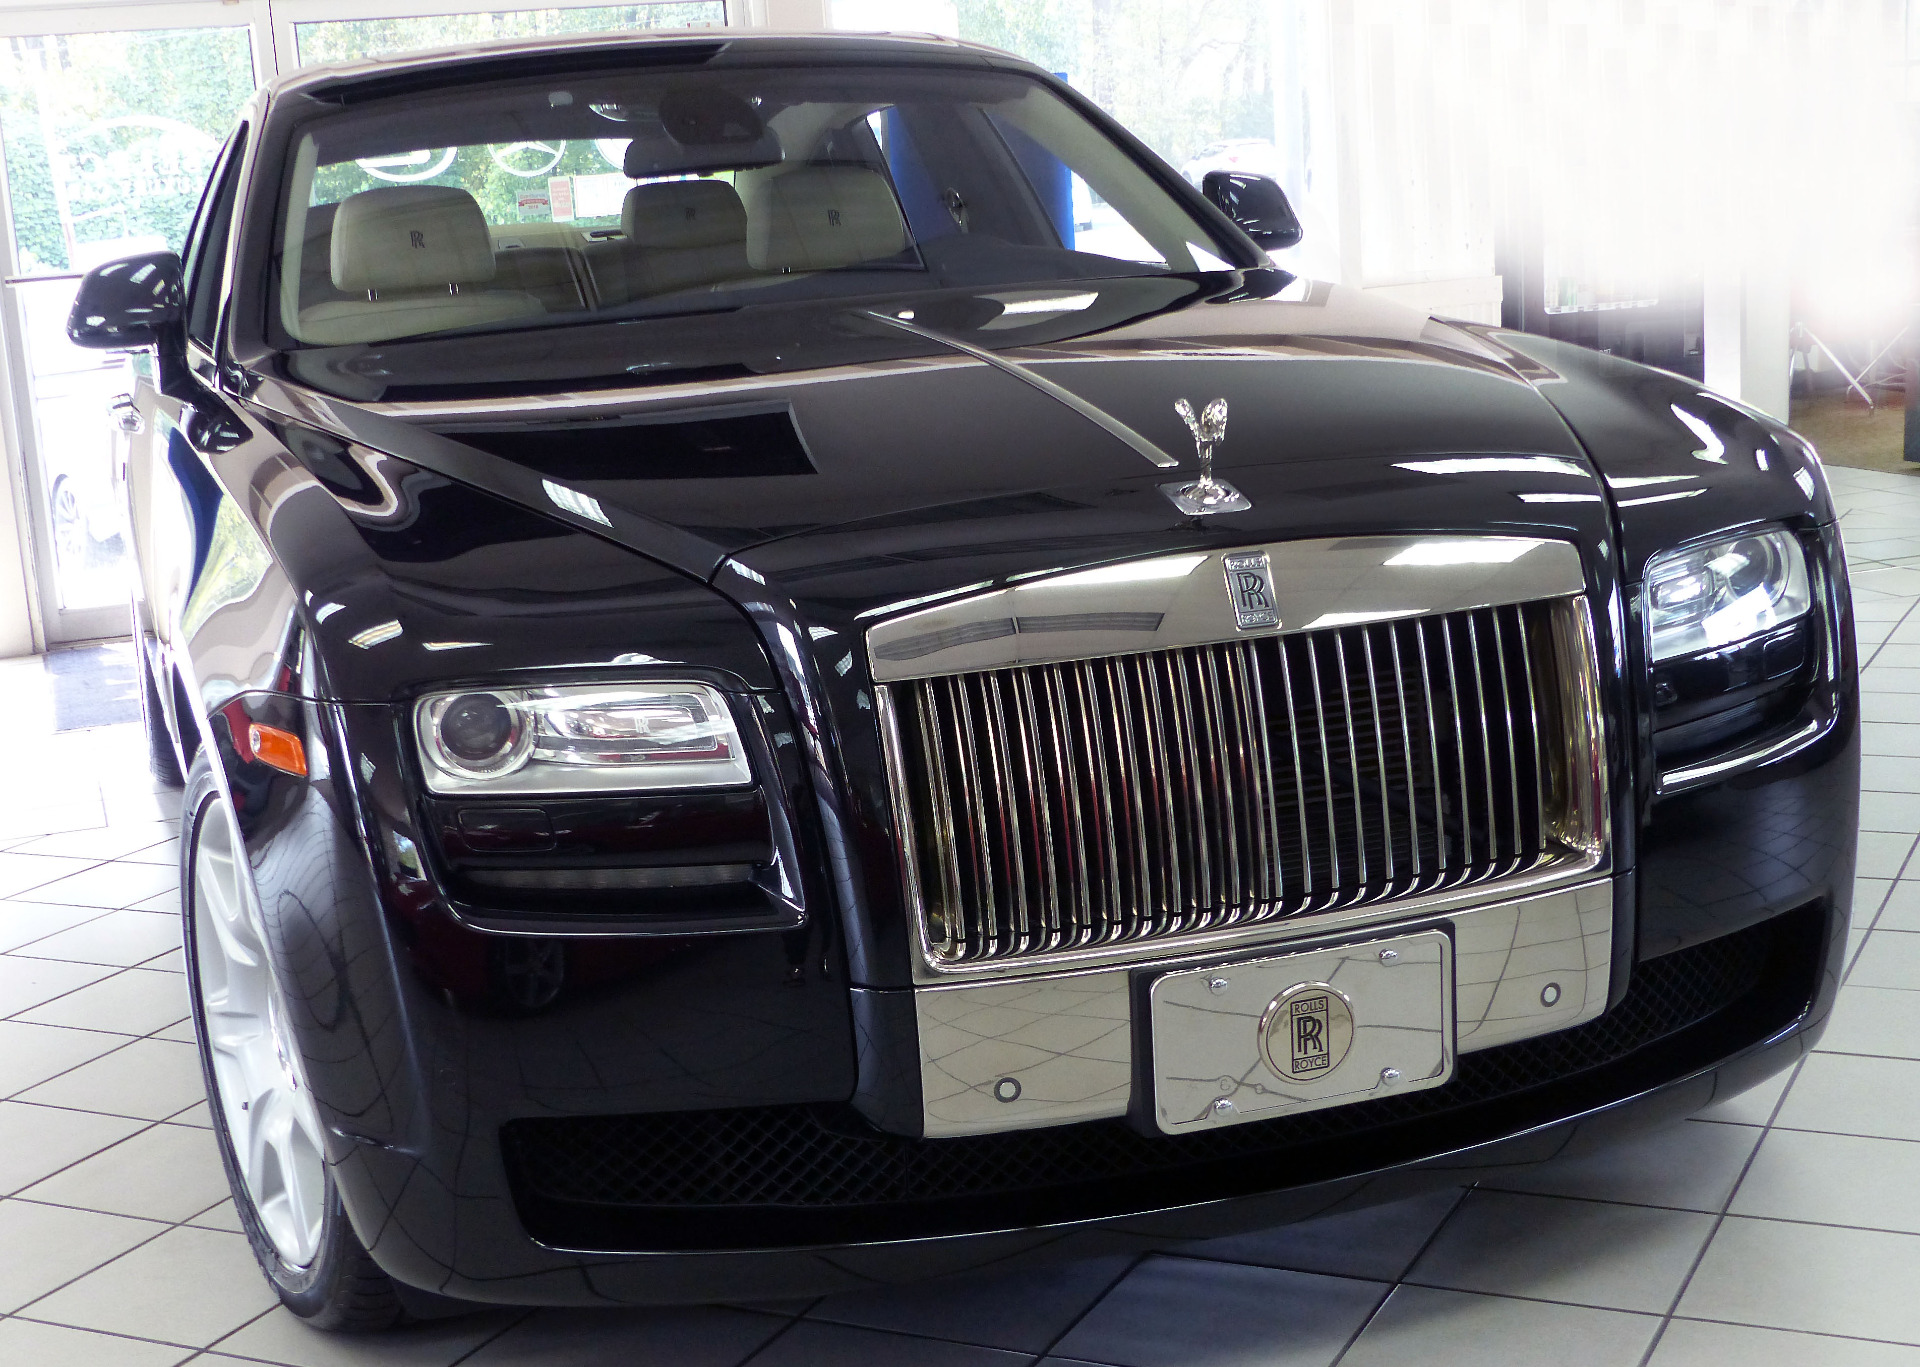 used 2012 rolls royce ghost marietta ga. Black Bedroom Furniture Sets. Home Design Ideas